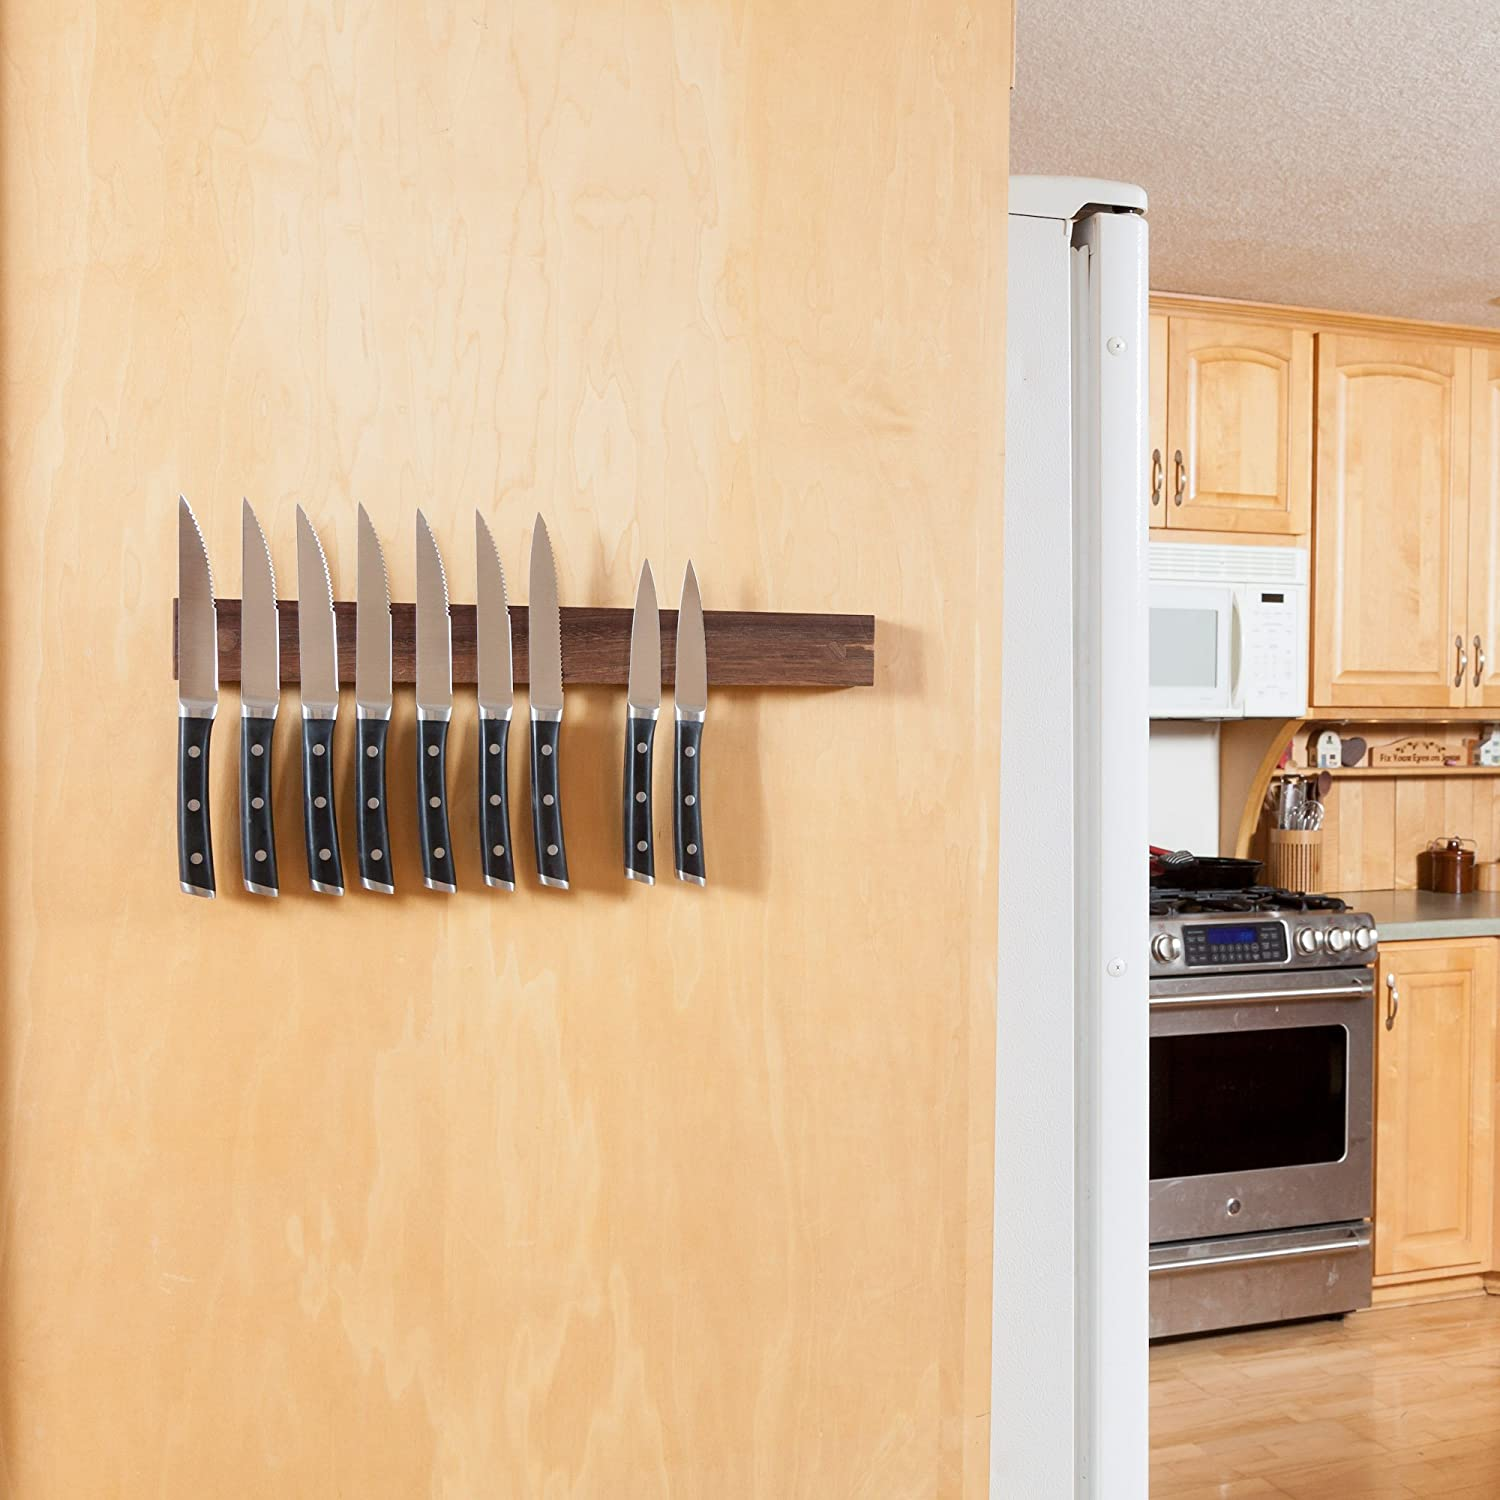 Amazon.com: Powerful Magnetic Knife Strip, Solid Wall Mount Wooden ...